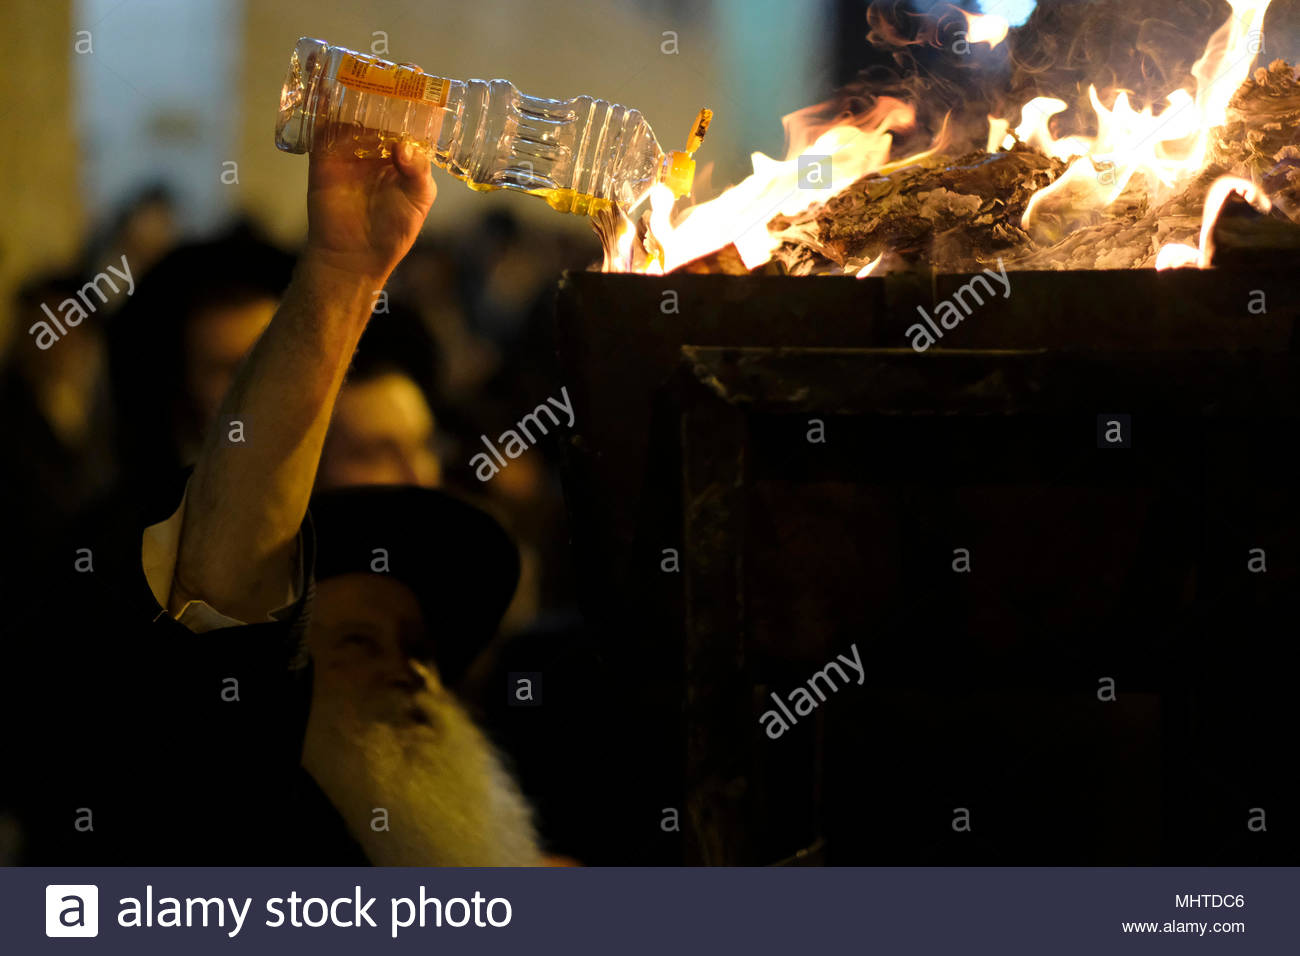 Jerusalem, Israel 02 May 2018. Ultra-Orthodox Jew pours oil into a bonfire in the Mea Shearim religious neighborhood during the celebration of Lag BaOmer holiday which marks the celebration, interpreted by some as anniversary of death of Rabbi Shimon bar Yochai, one of Judaism's great sages some 1800 years ago and the day on which he revealed the deepest secrets of kabbalah a landmark text of Jewish mysticism - Stock Image